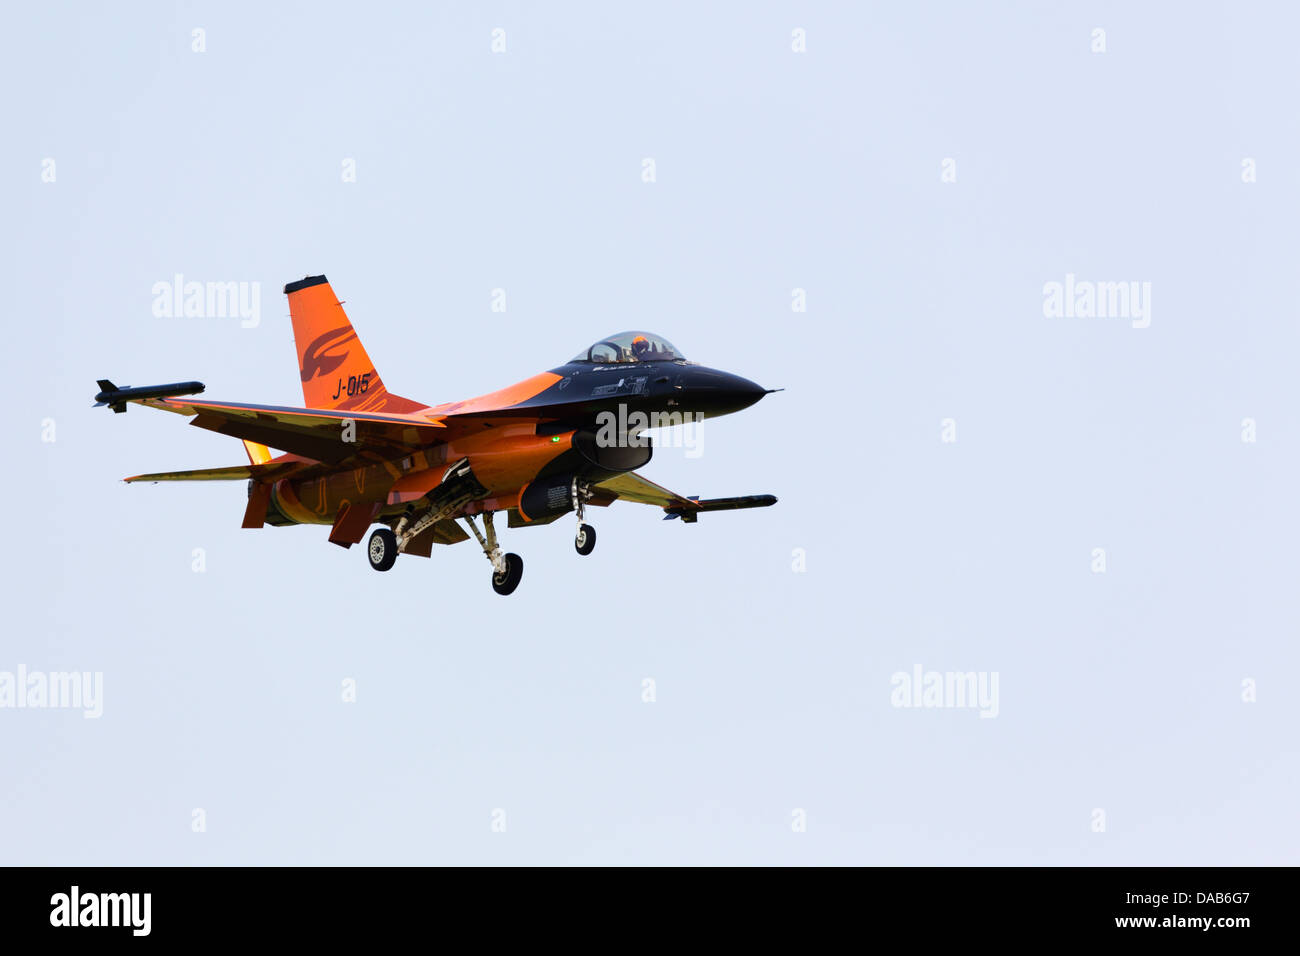 General Dynamics F16A 'Fighting Falcon' display aircraft from the Netherlands air force. RAF Waddington - Stock Image